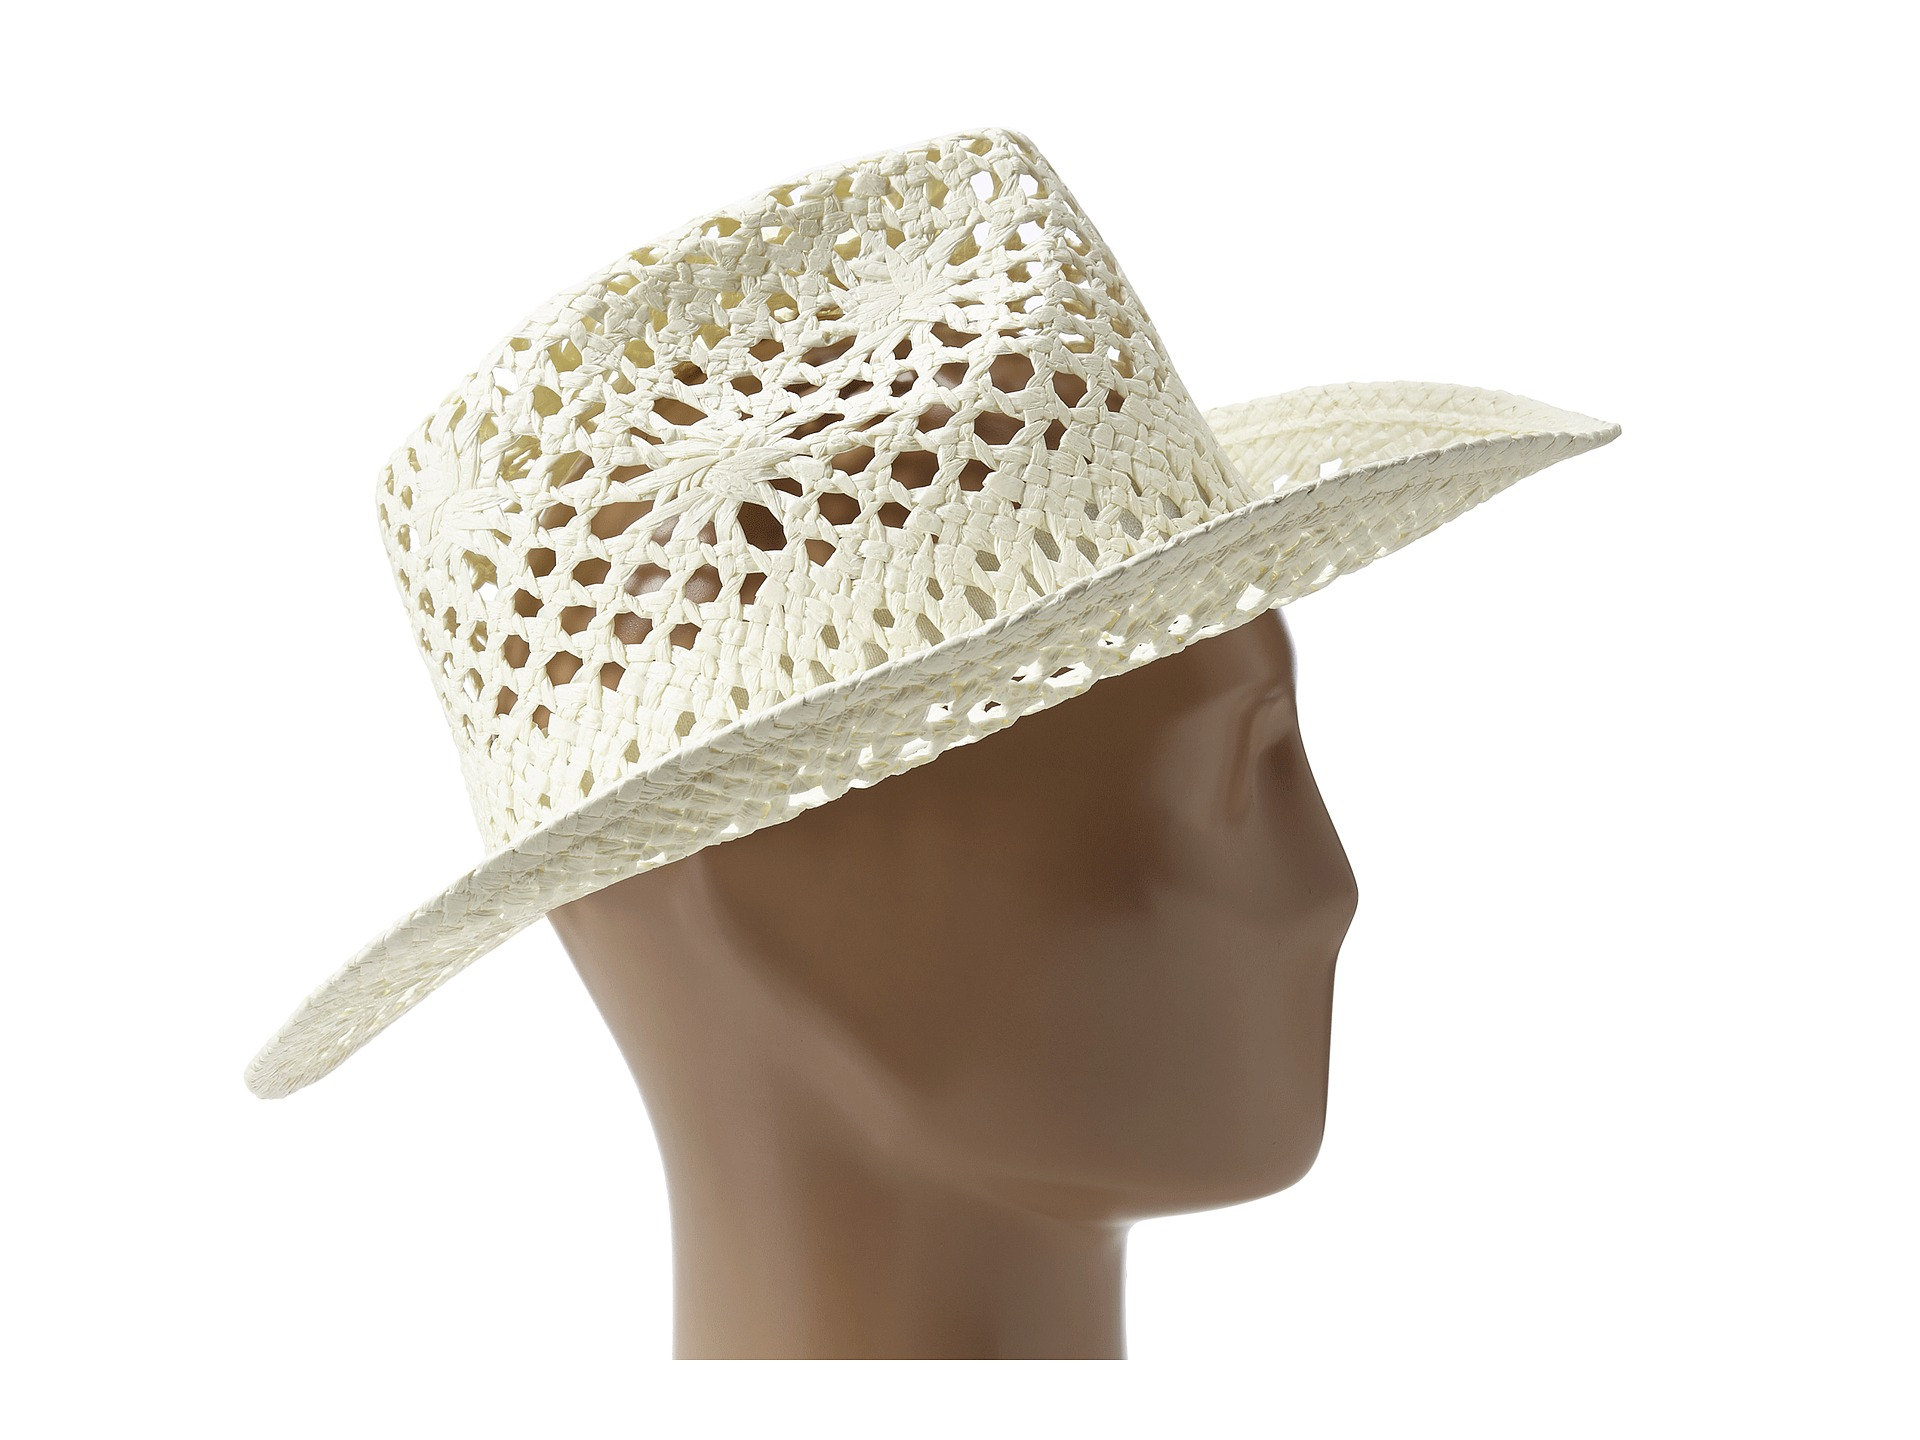 7ac99acbc88a7 San Diego Hat Company Pbc1008 Open Weave Cowboy Hat in White - Lyst